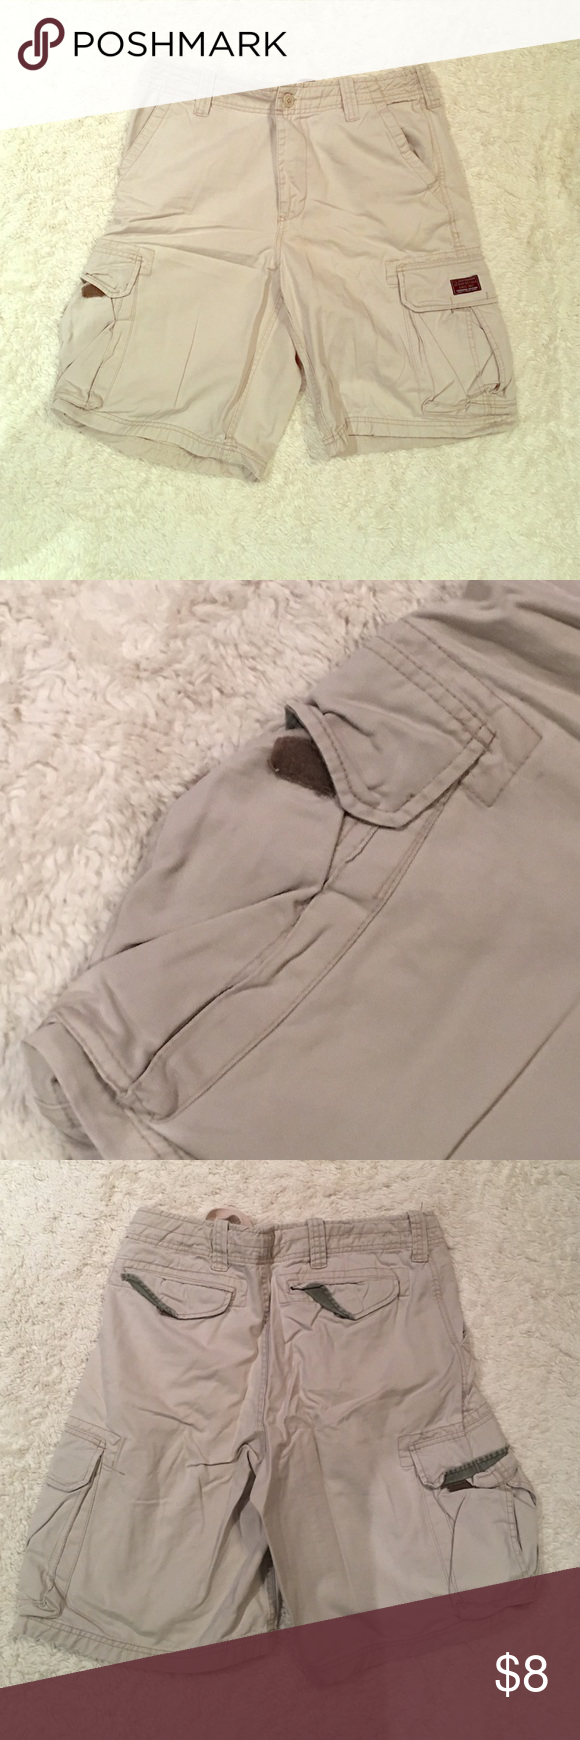 Men's Aeropostale khaki cargo shorts 34 Used- have been in storage for some time- could use a good ironing. I guess they don't look brand new but there are no specific flaws to identify Aeropostale Shorts Cargo